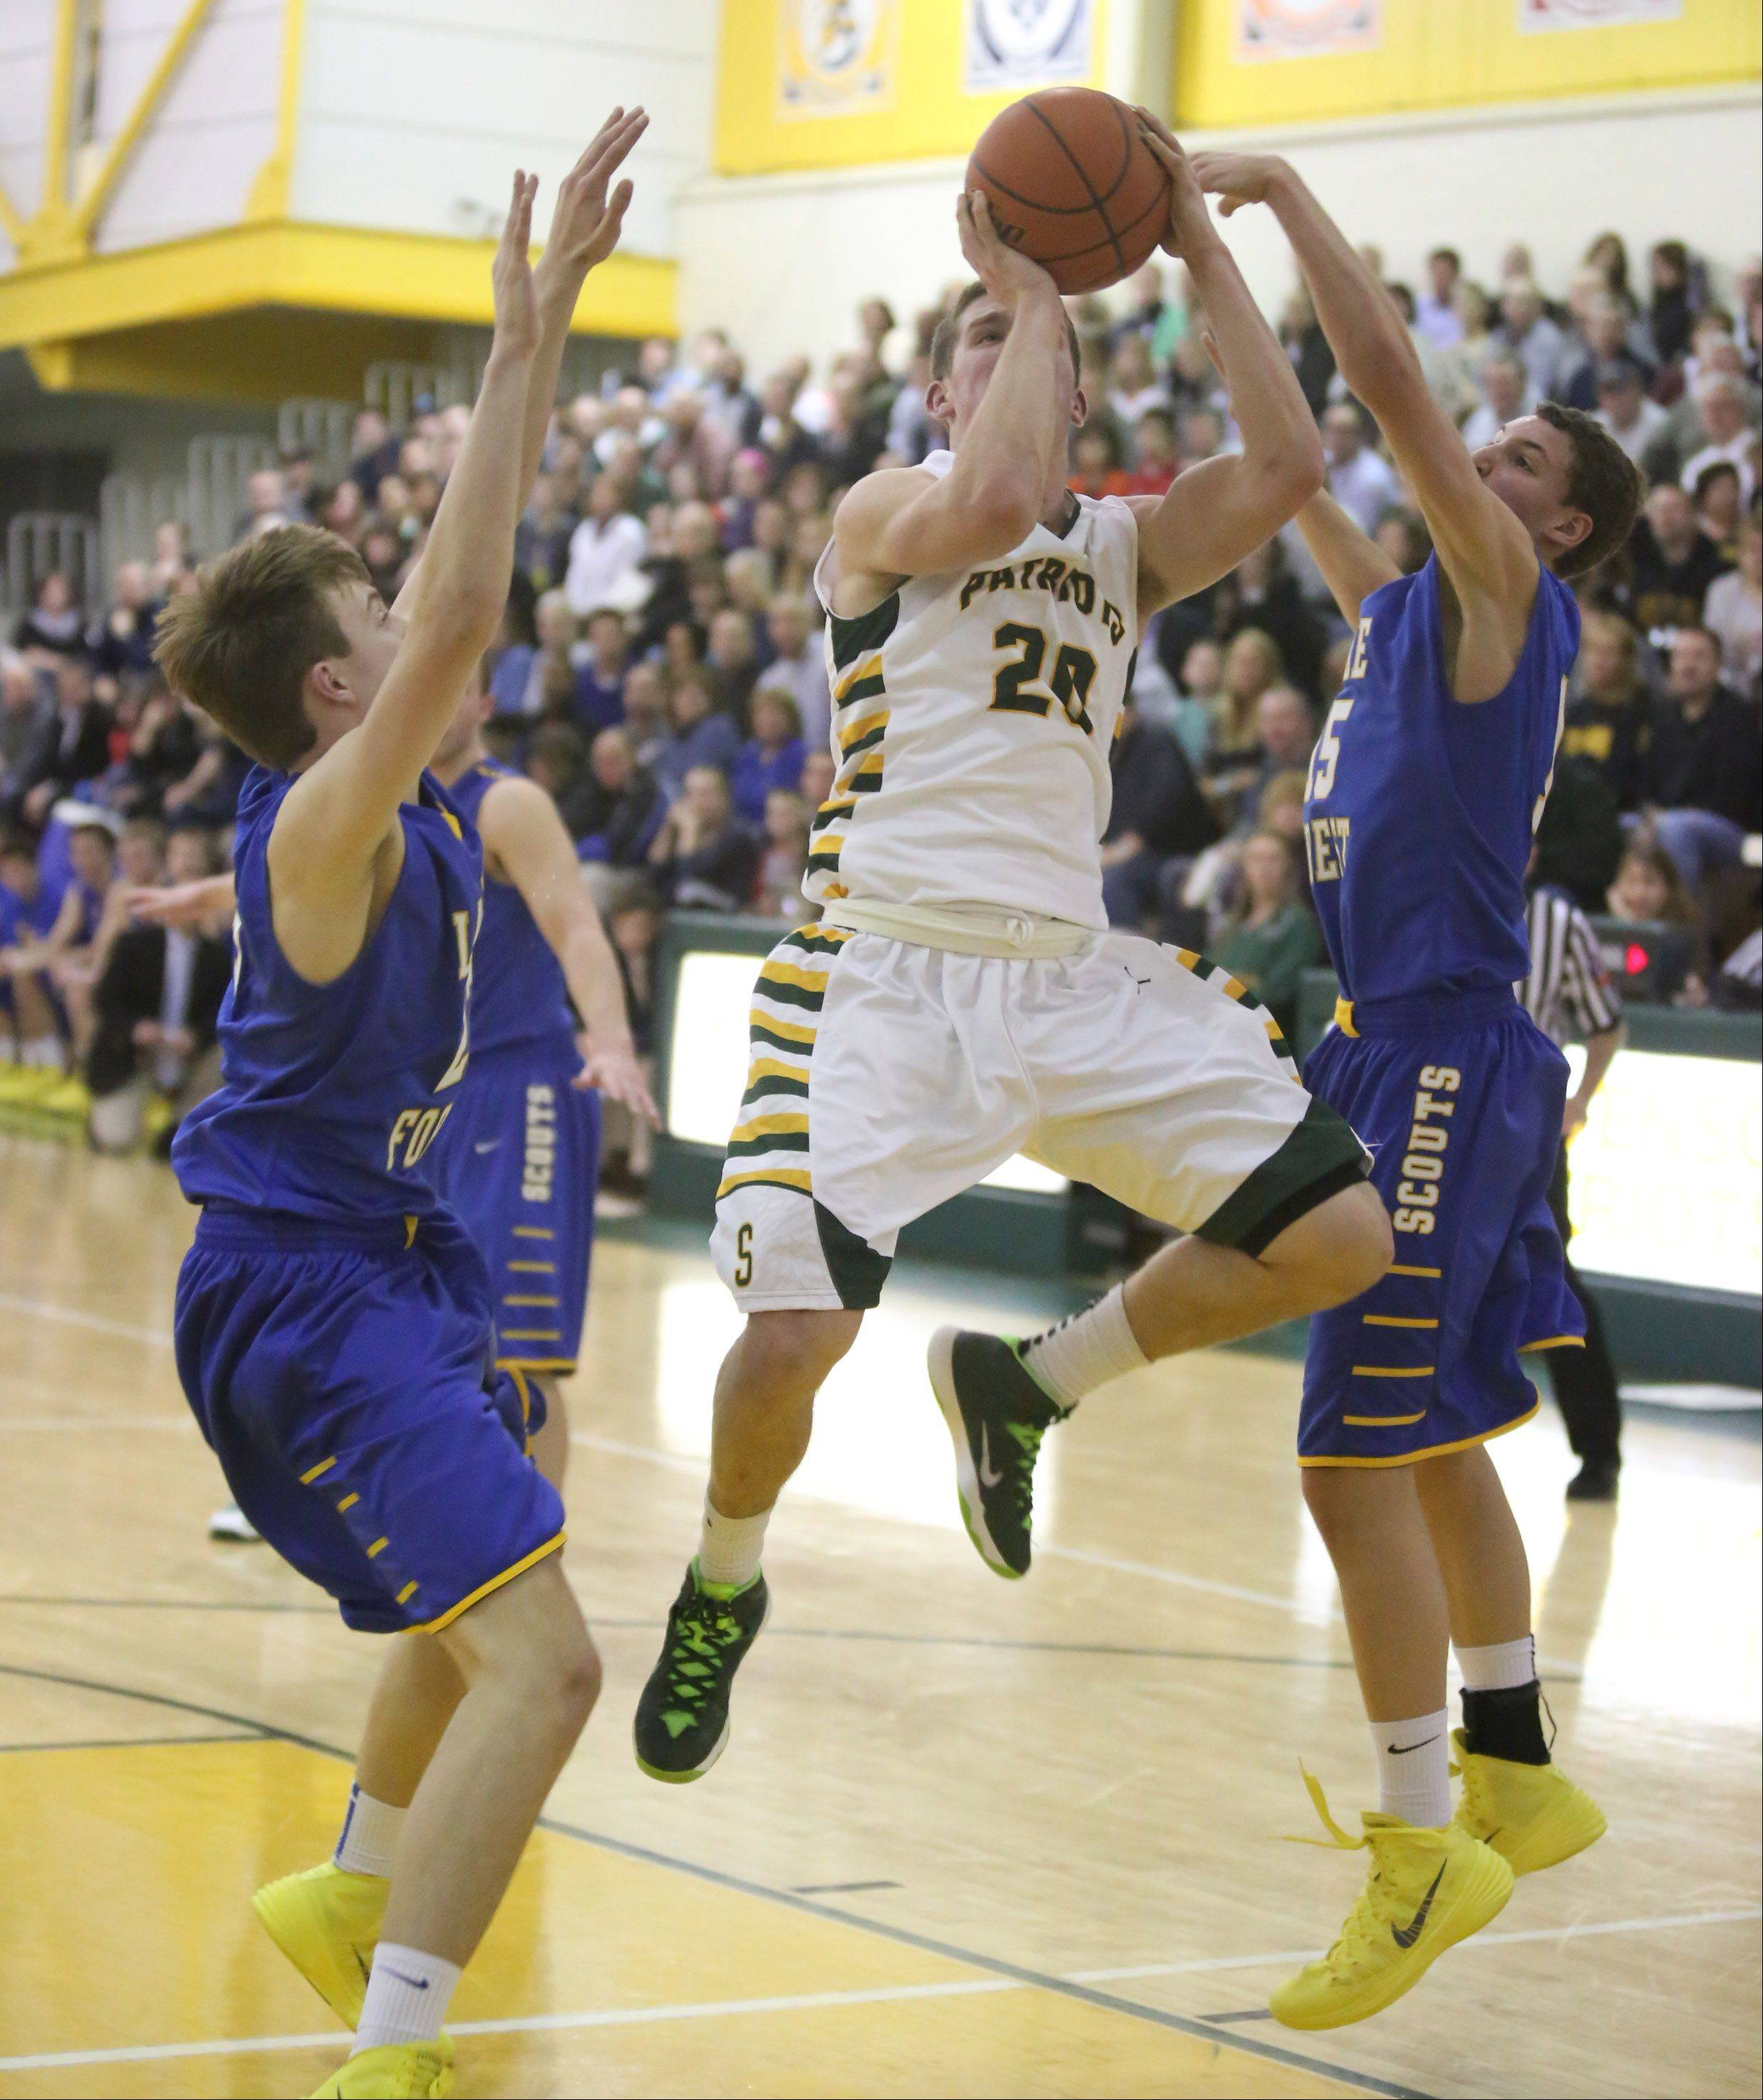 Images from the Lake Forest at Stevenson boys basketball game on Friday, January 17 in Lincolnshire.